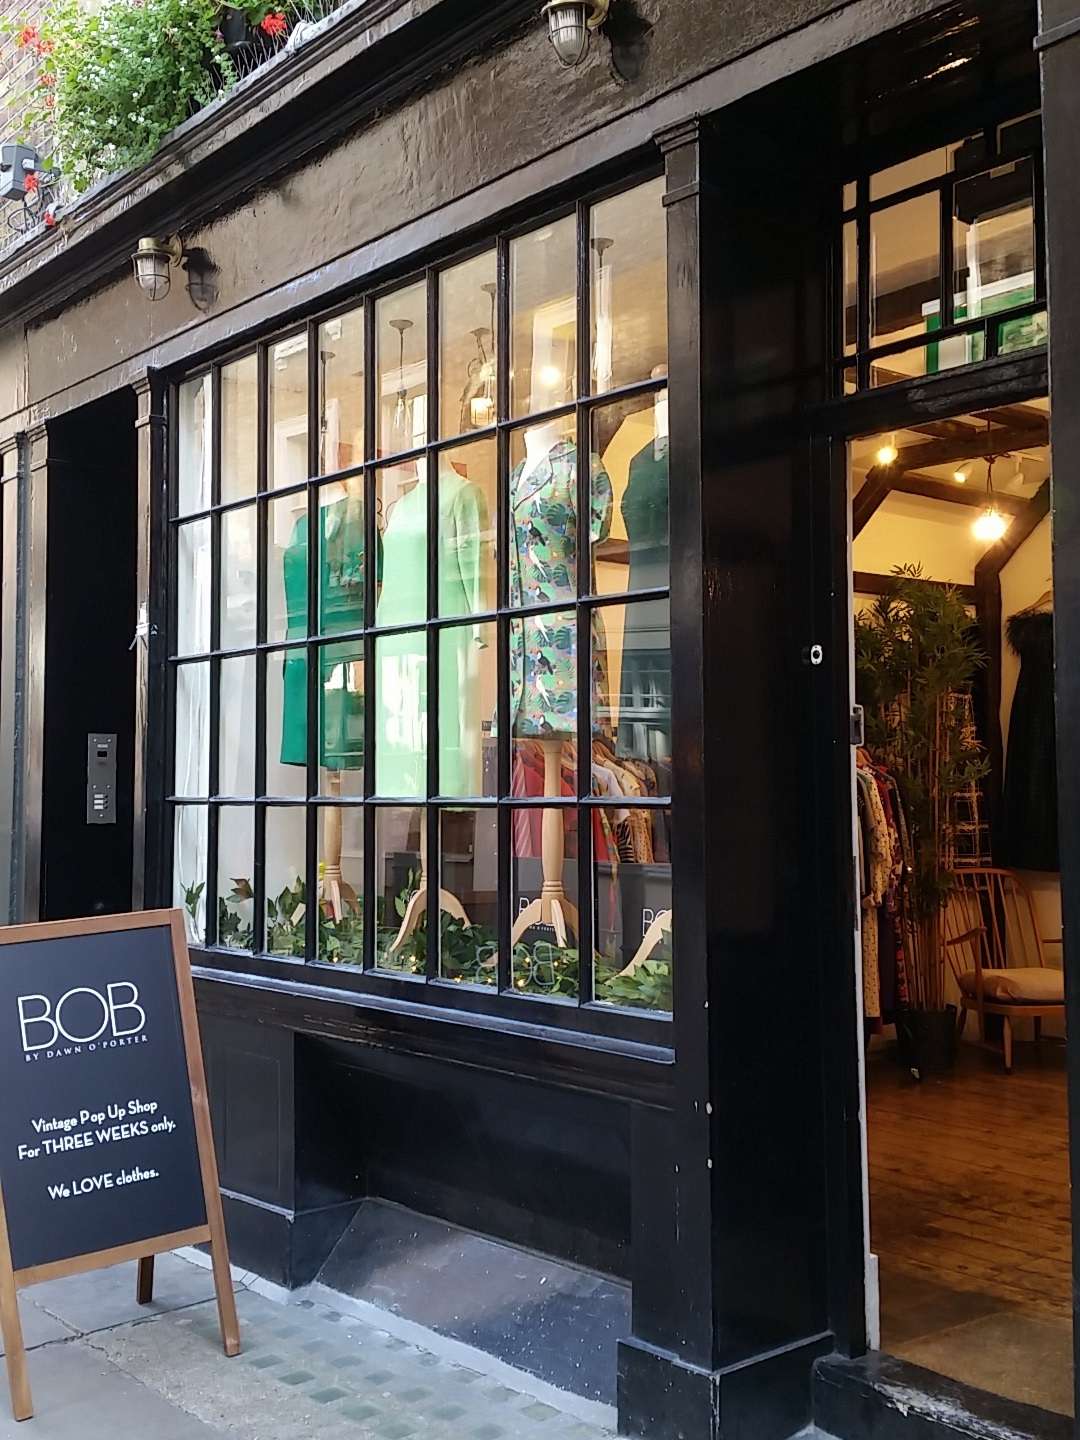 The BOB by Dawn O'Porter pop-up shop on Newburgh Street